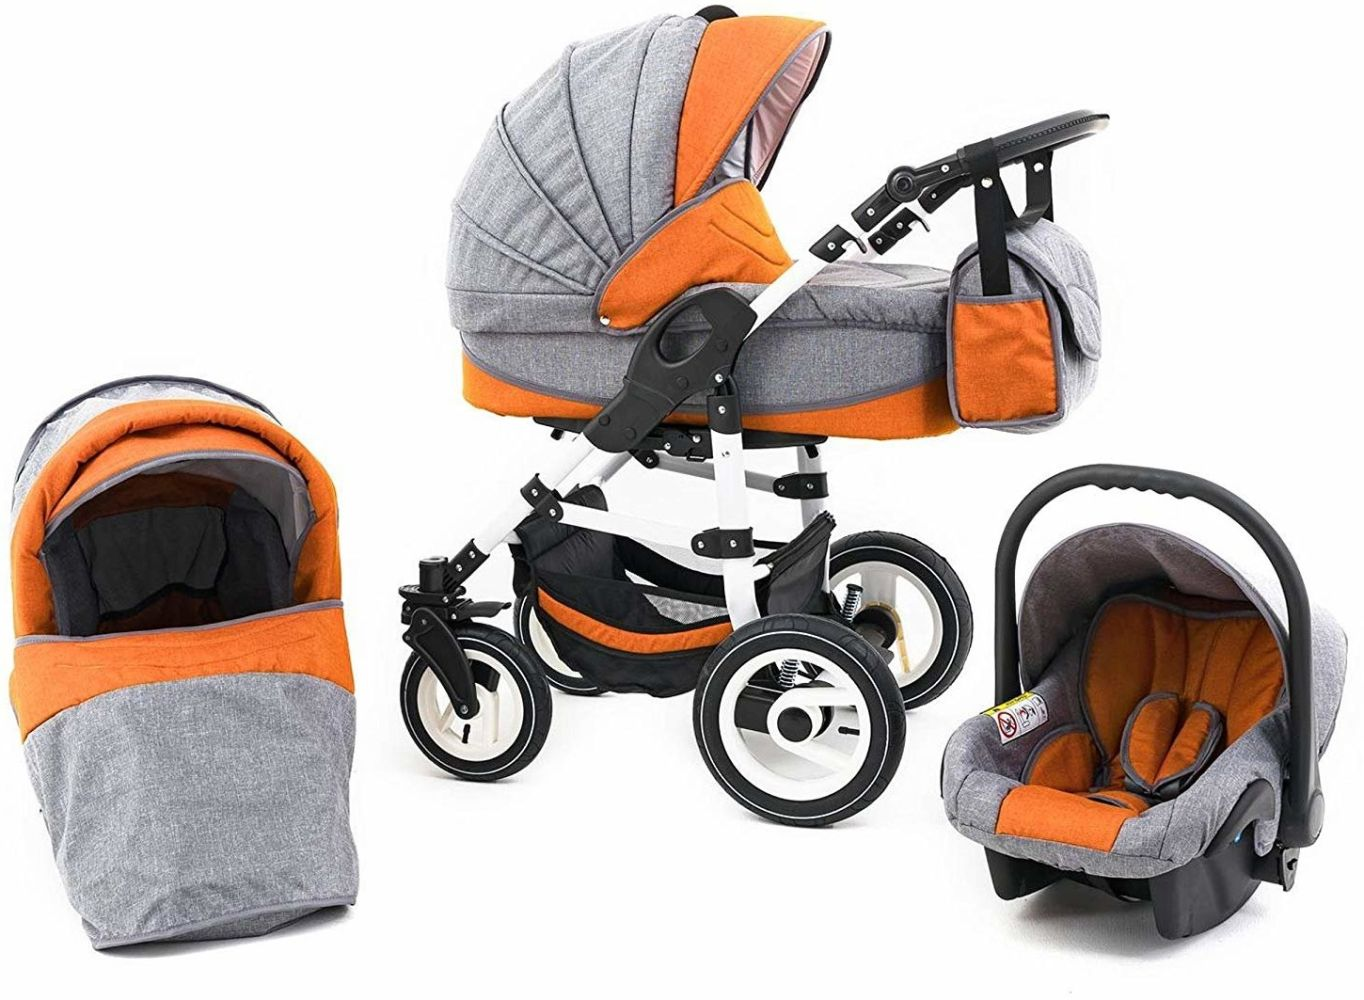 Tabbi ECO LN - 3 in 1 Kombi Kinderwagen Luft Orange Bild 1